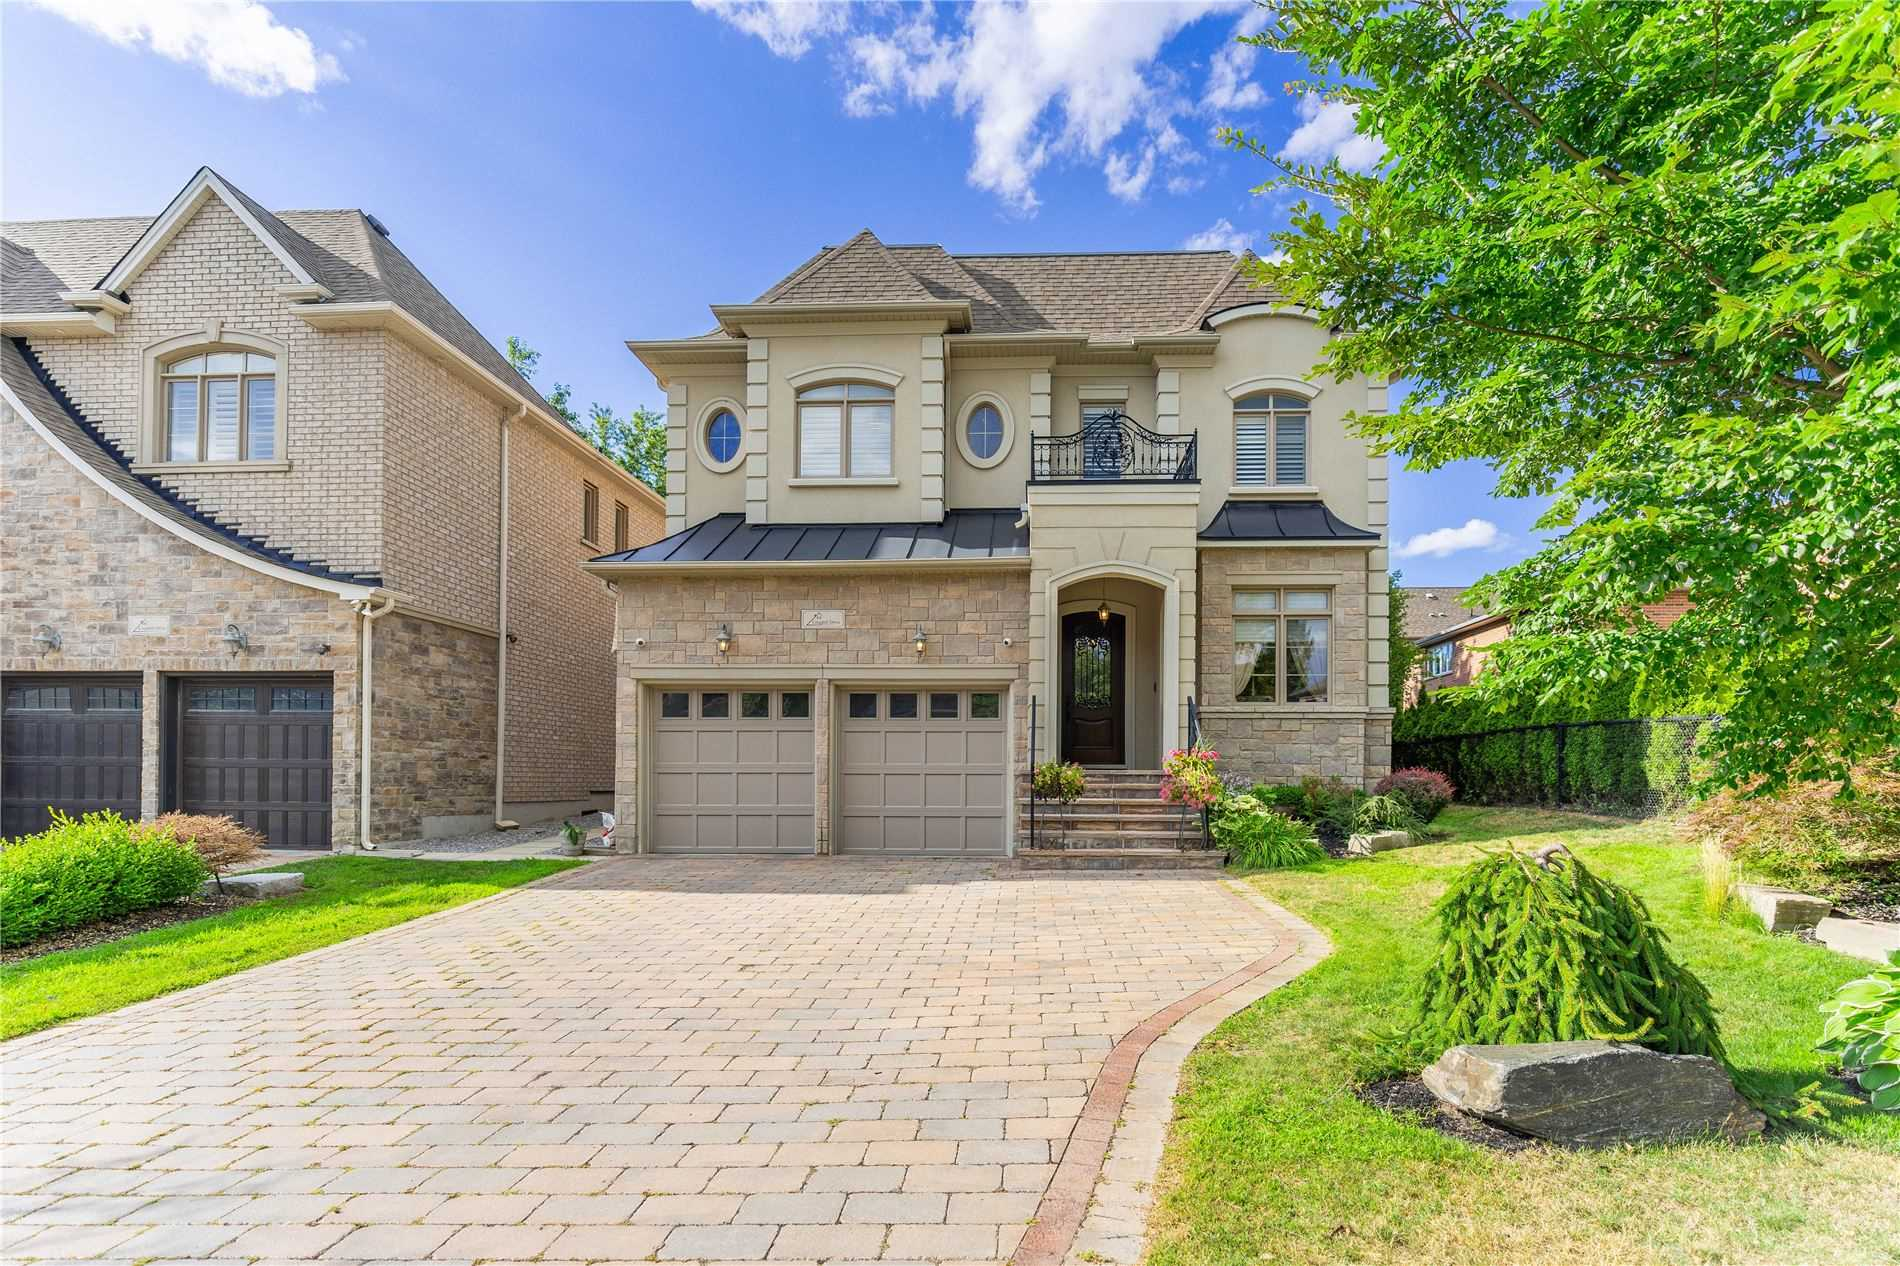 64 Long Hill Dr, Richmond Hill, Ontario L4E4G9, 4 Bedrooms Bedrooms, 10 Rooms Rooms,6 BathroomsBathrooms,Detached,For Sale,Long Hill,N4853309